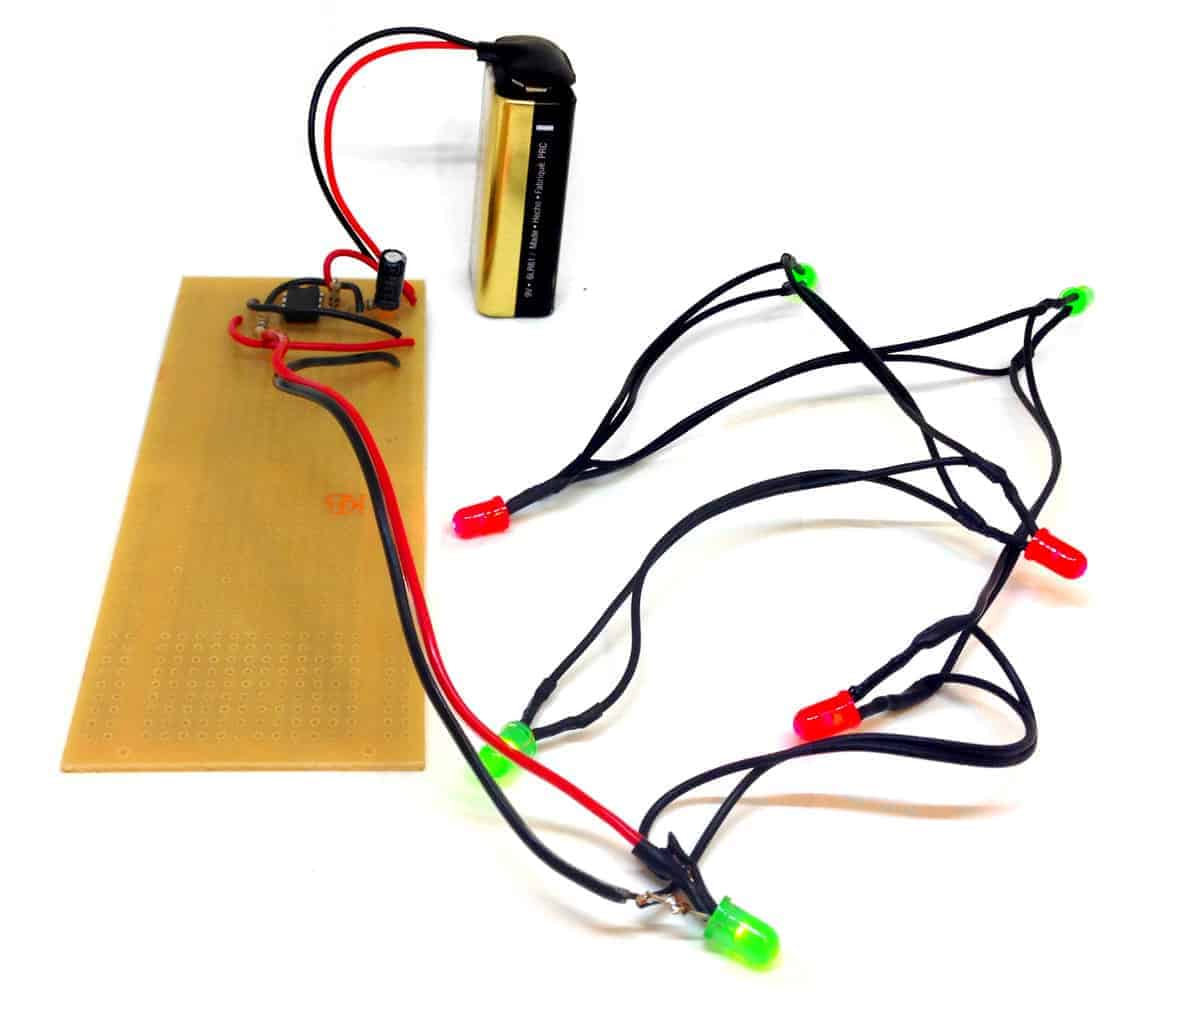 Blinking Christmas Lights on current limiting resistor for led